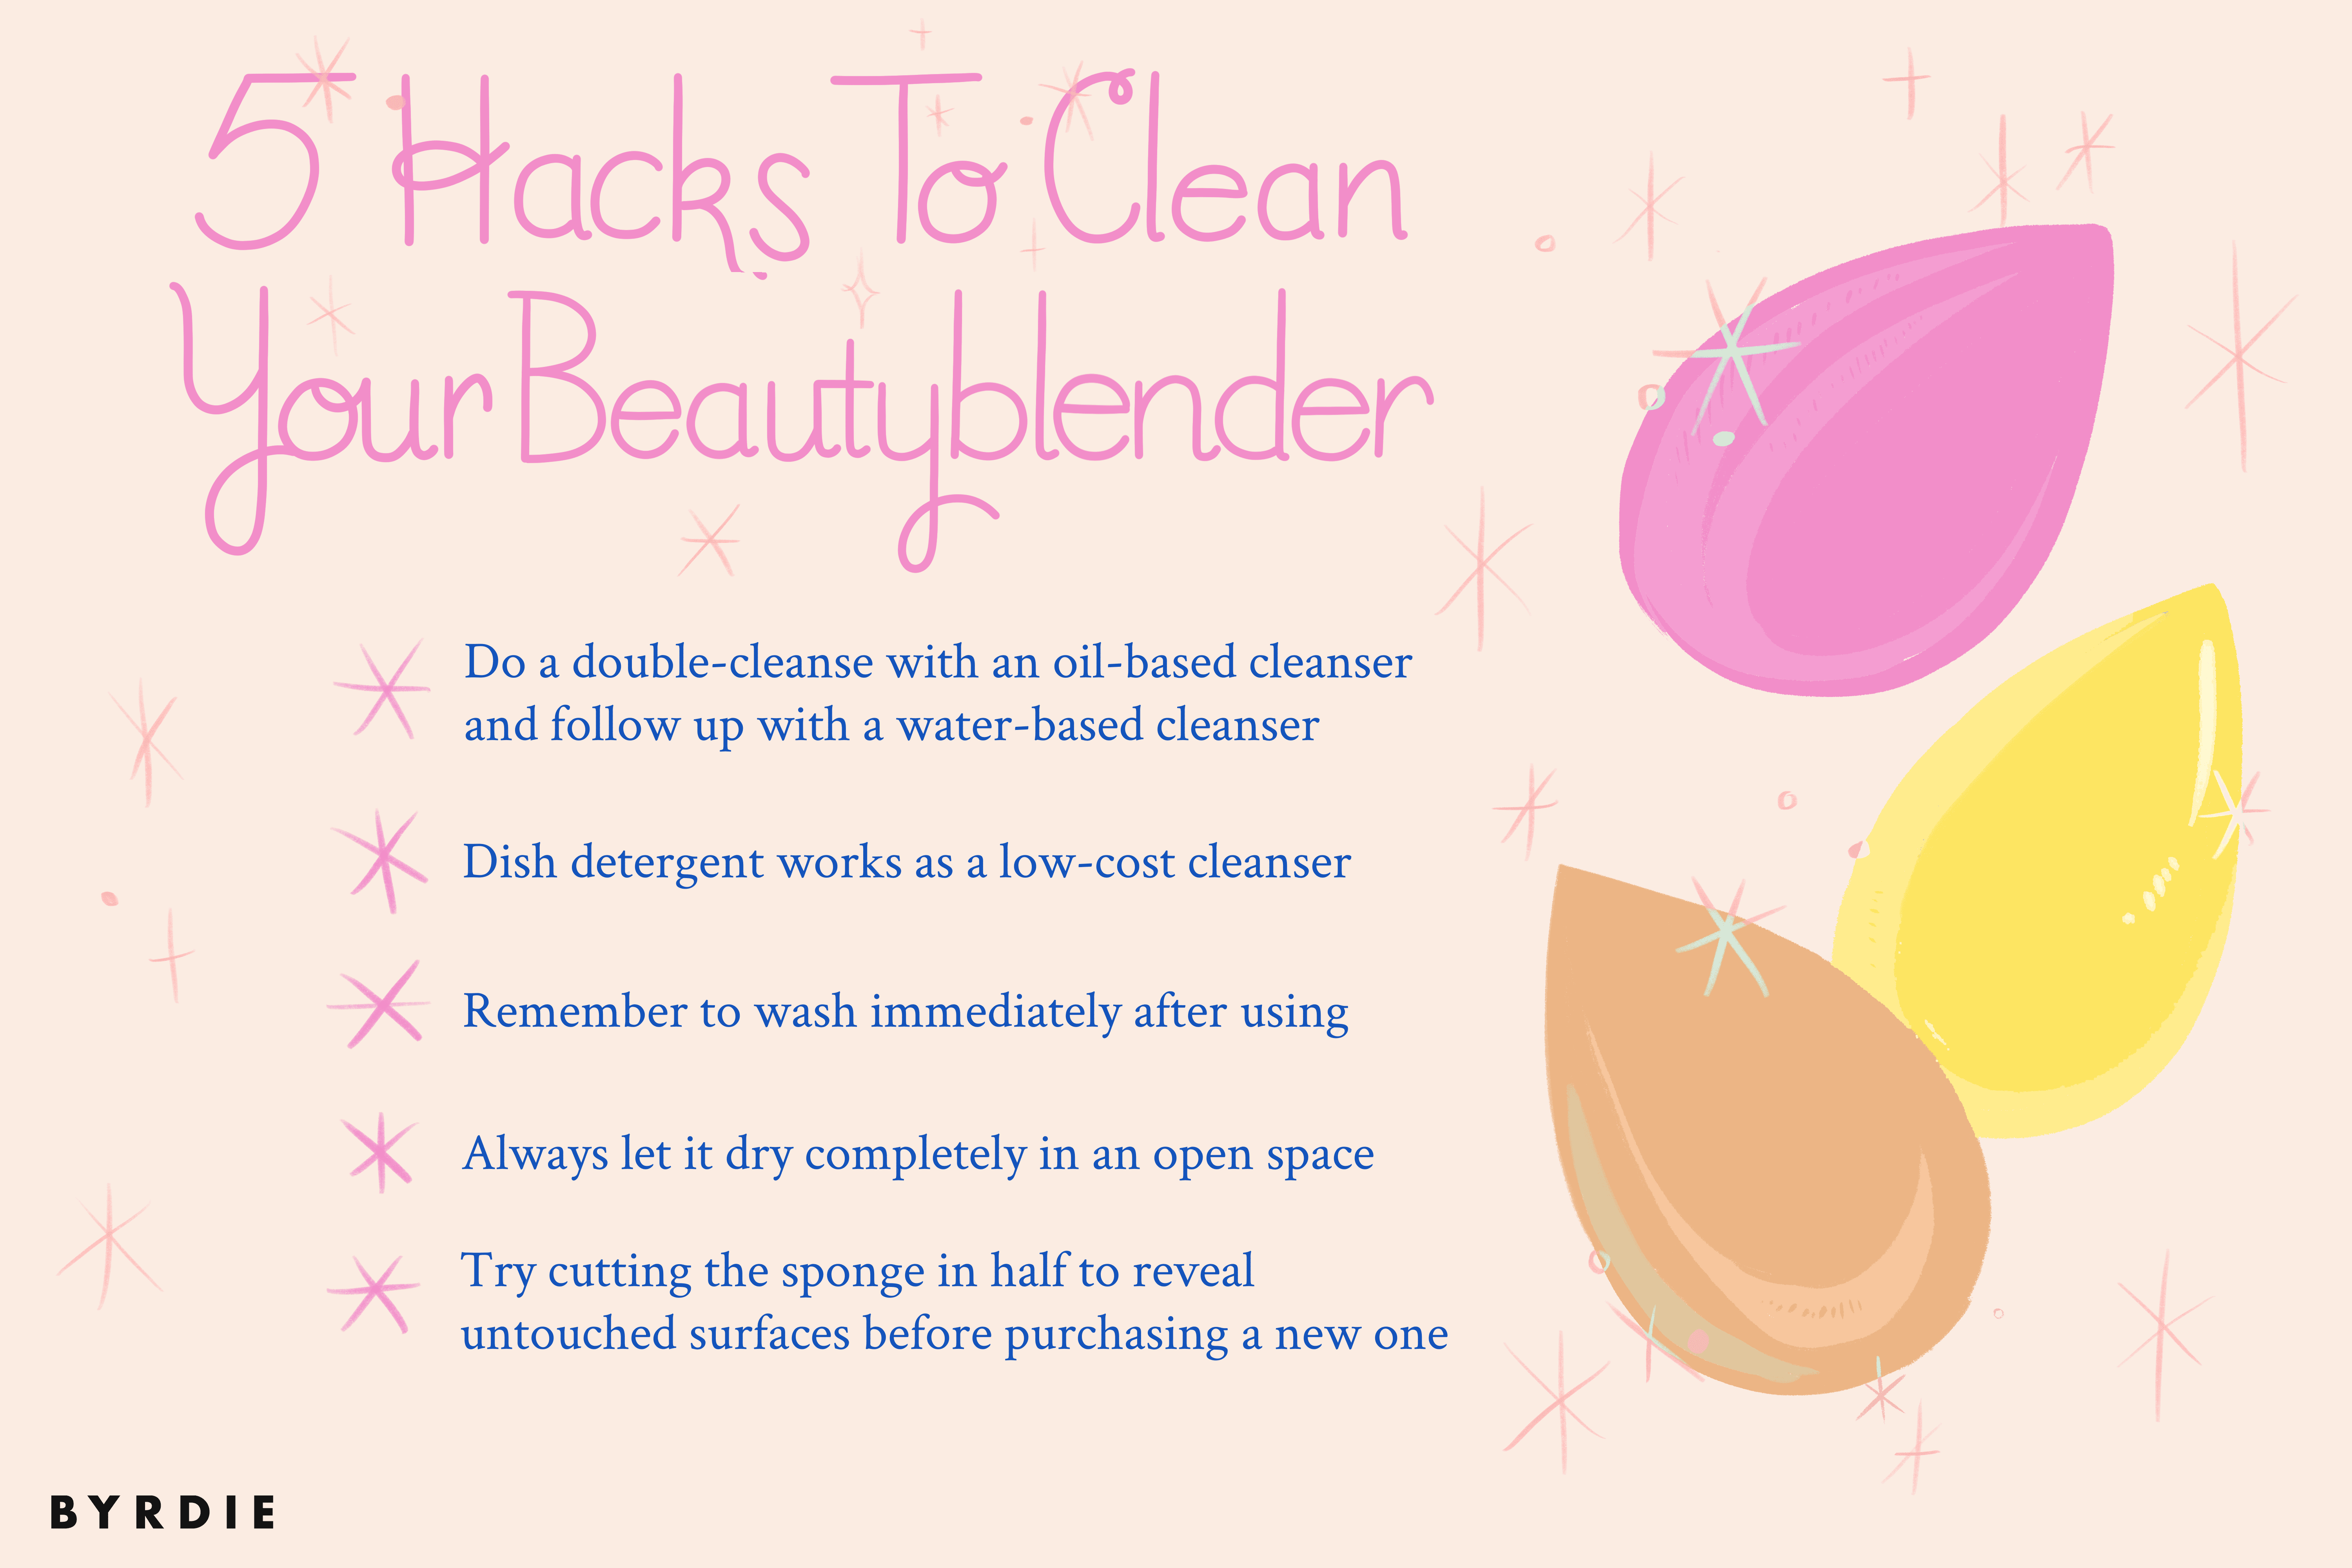 8 Easy Hacks to Clean Your Beautyblender